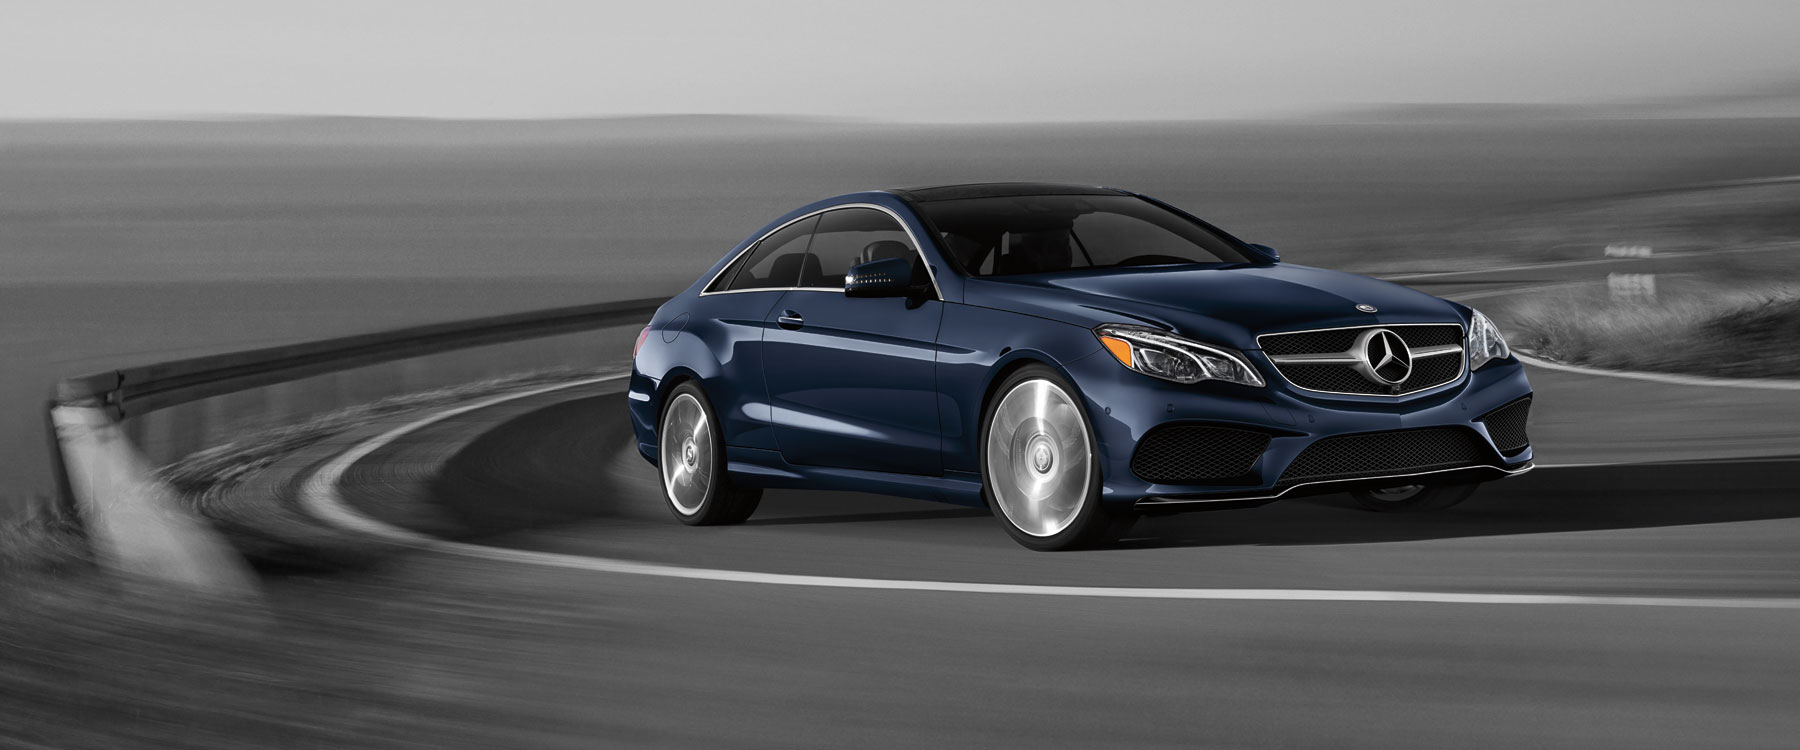 The 2017 mercedes benz e400 coupe for las vegas and henderson for Mercedes benz henderson